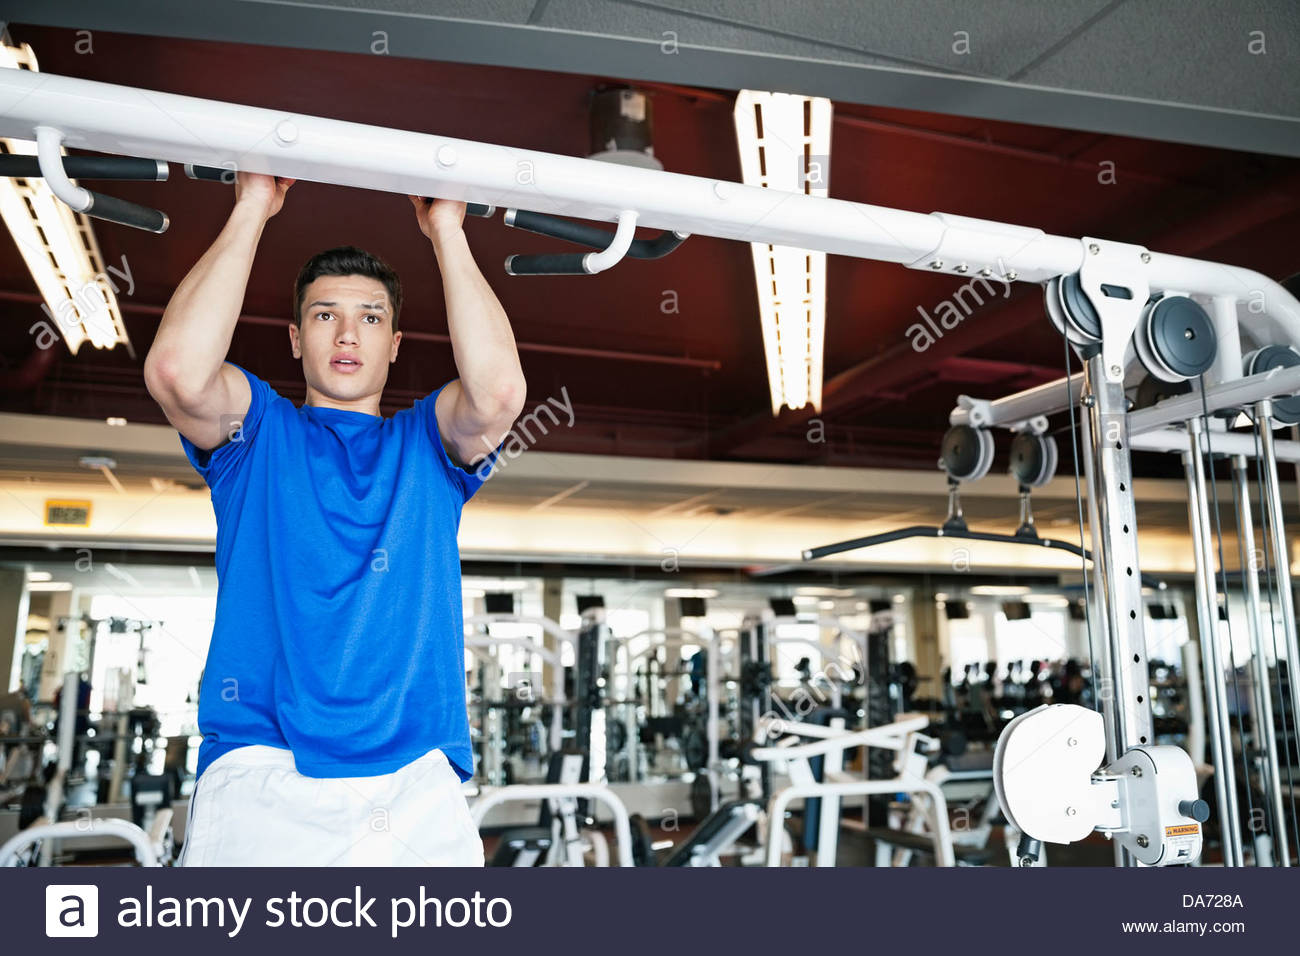 Man doing pull-ups in fitness center - Stock Image